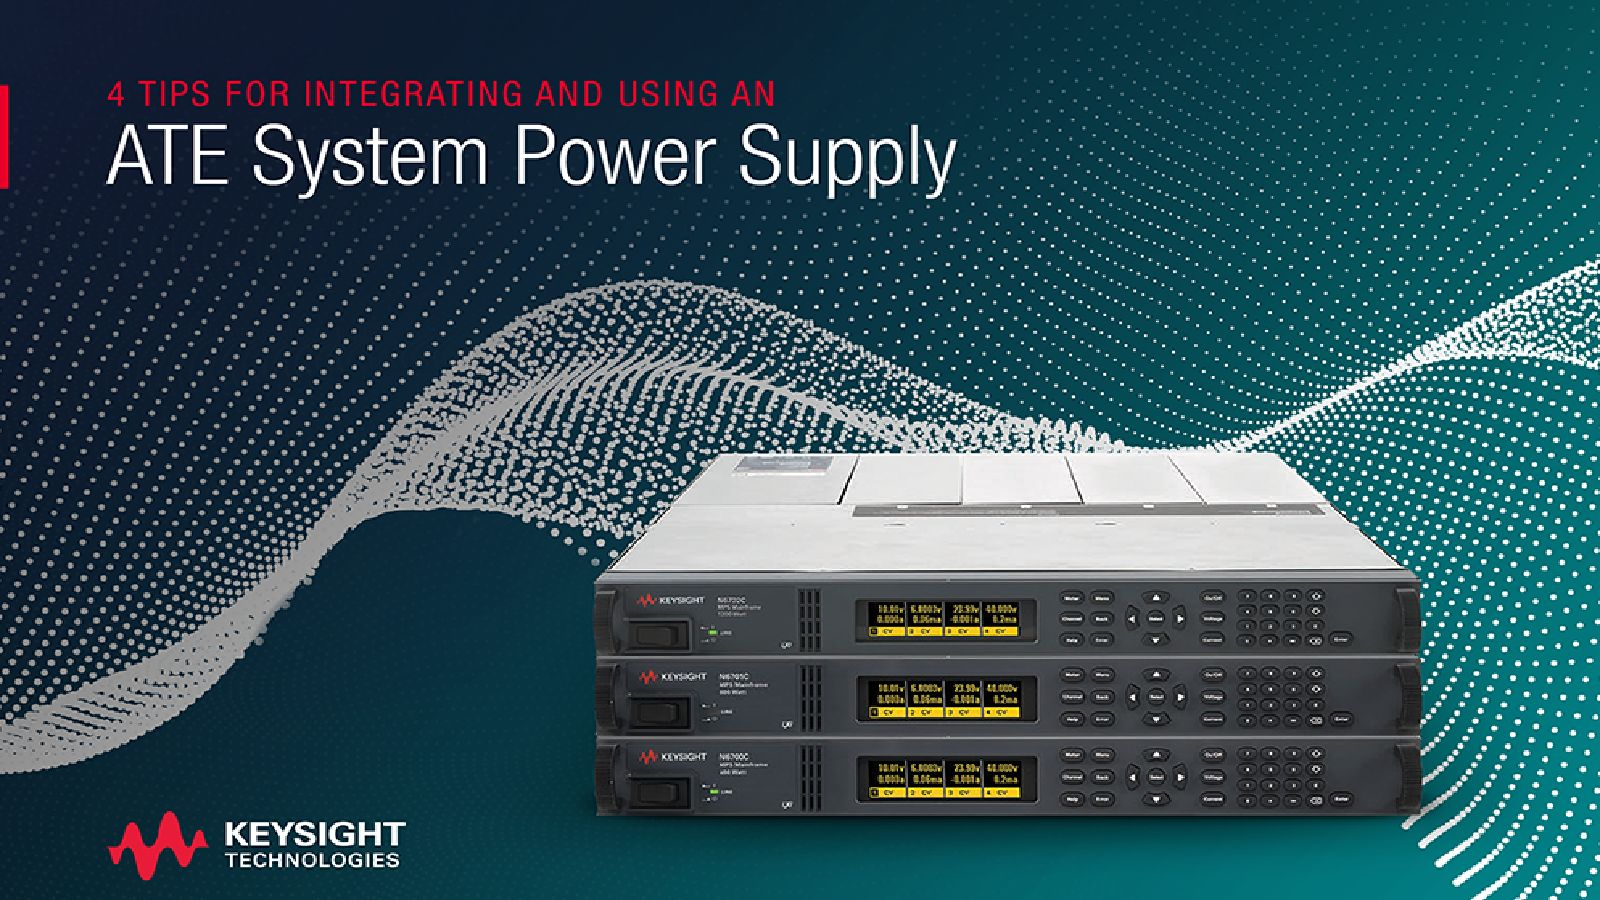 Four Tips for Integrating and Using an ATE System Power Supply